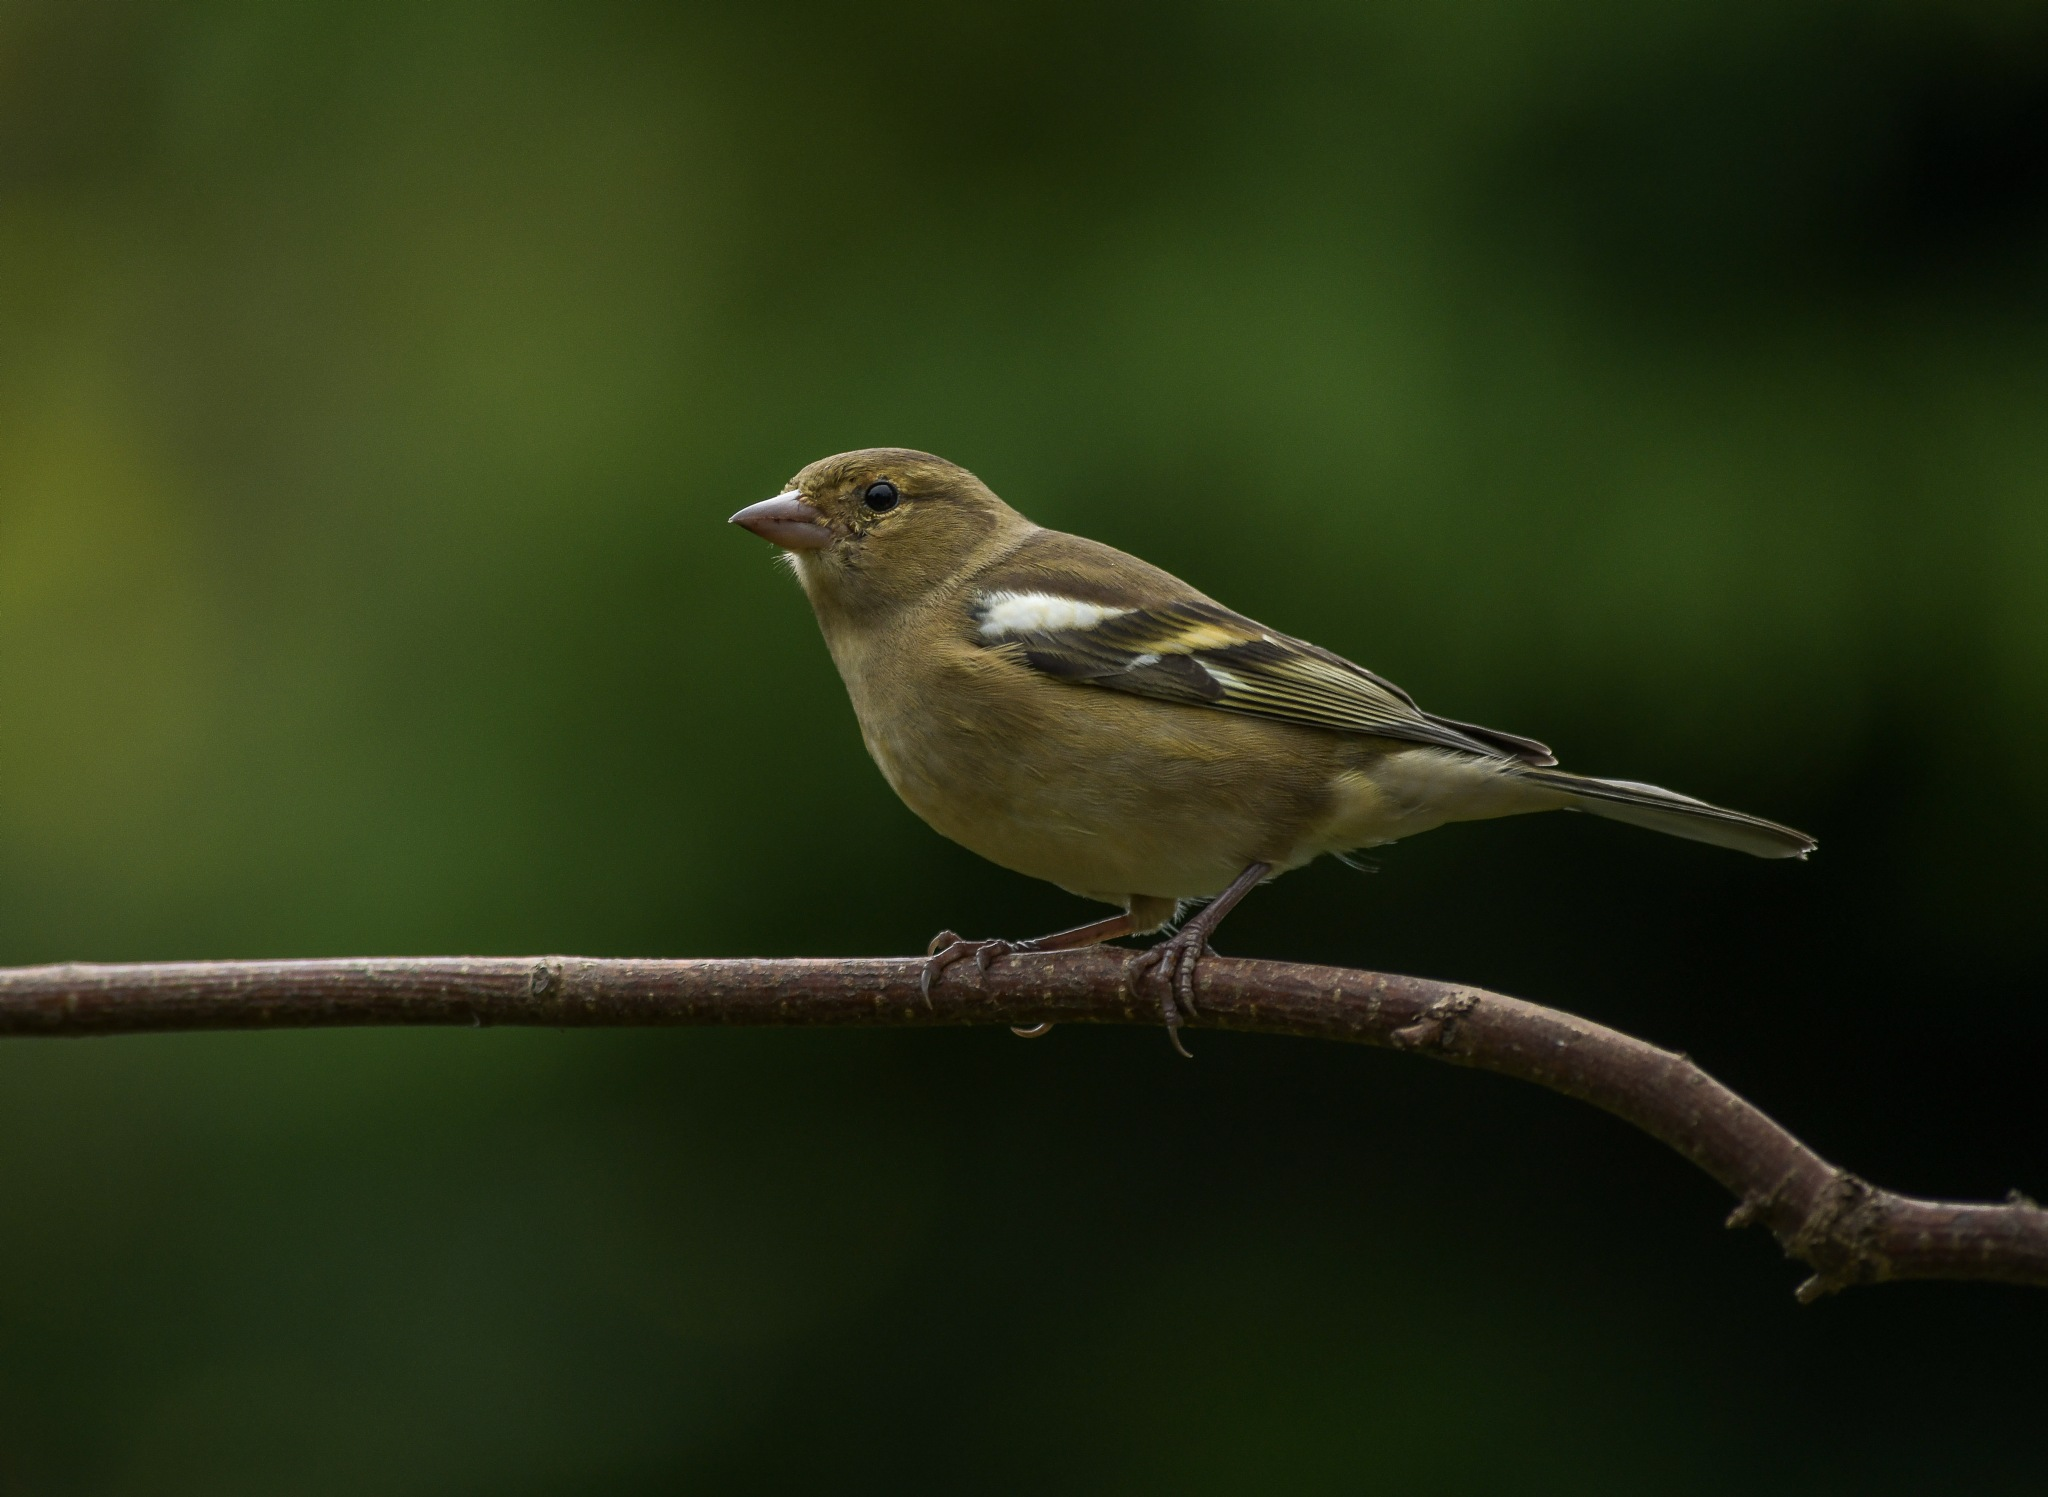 Female Chaffinch by Paul Collins